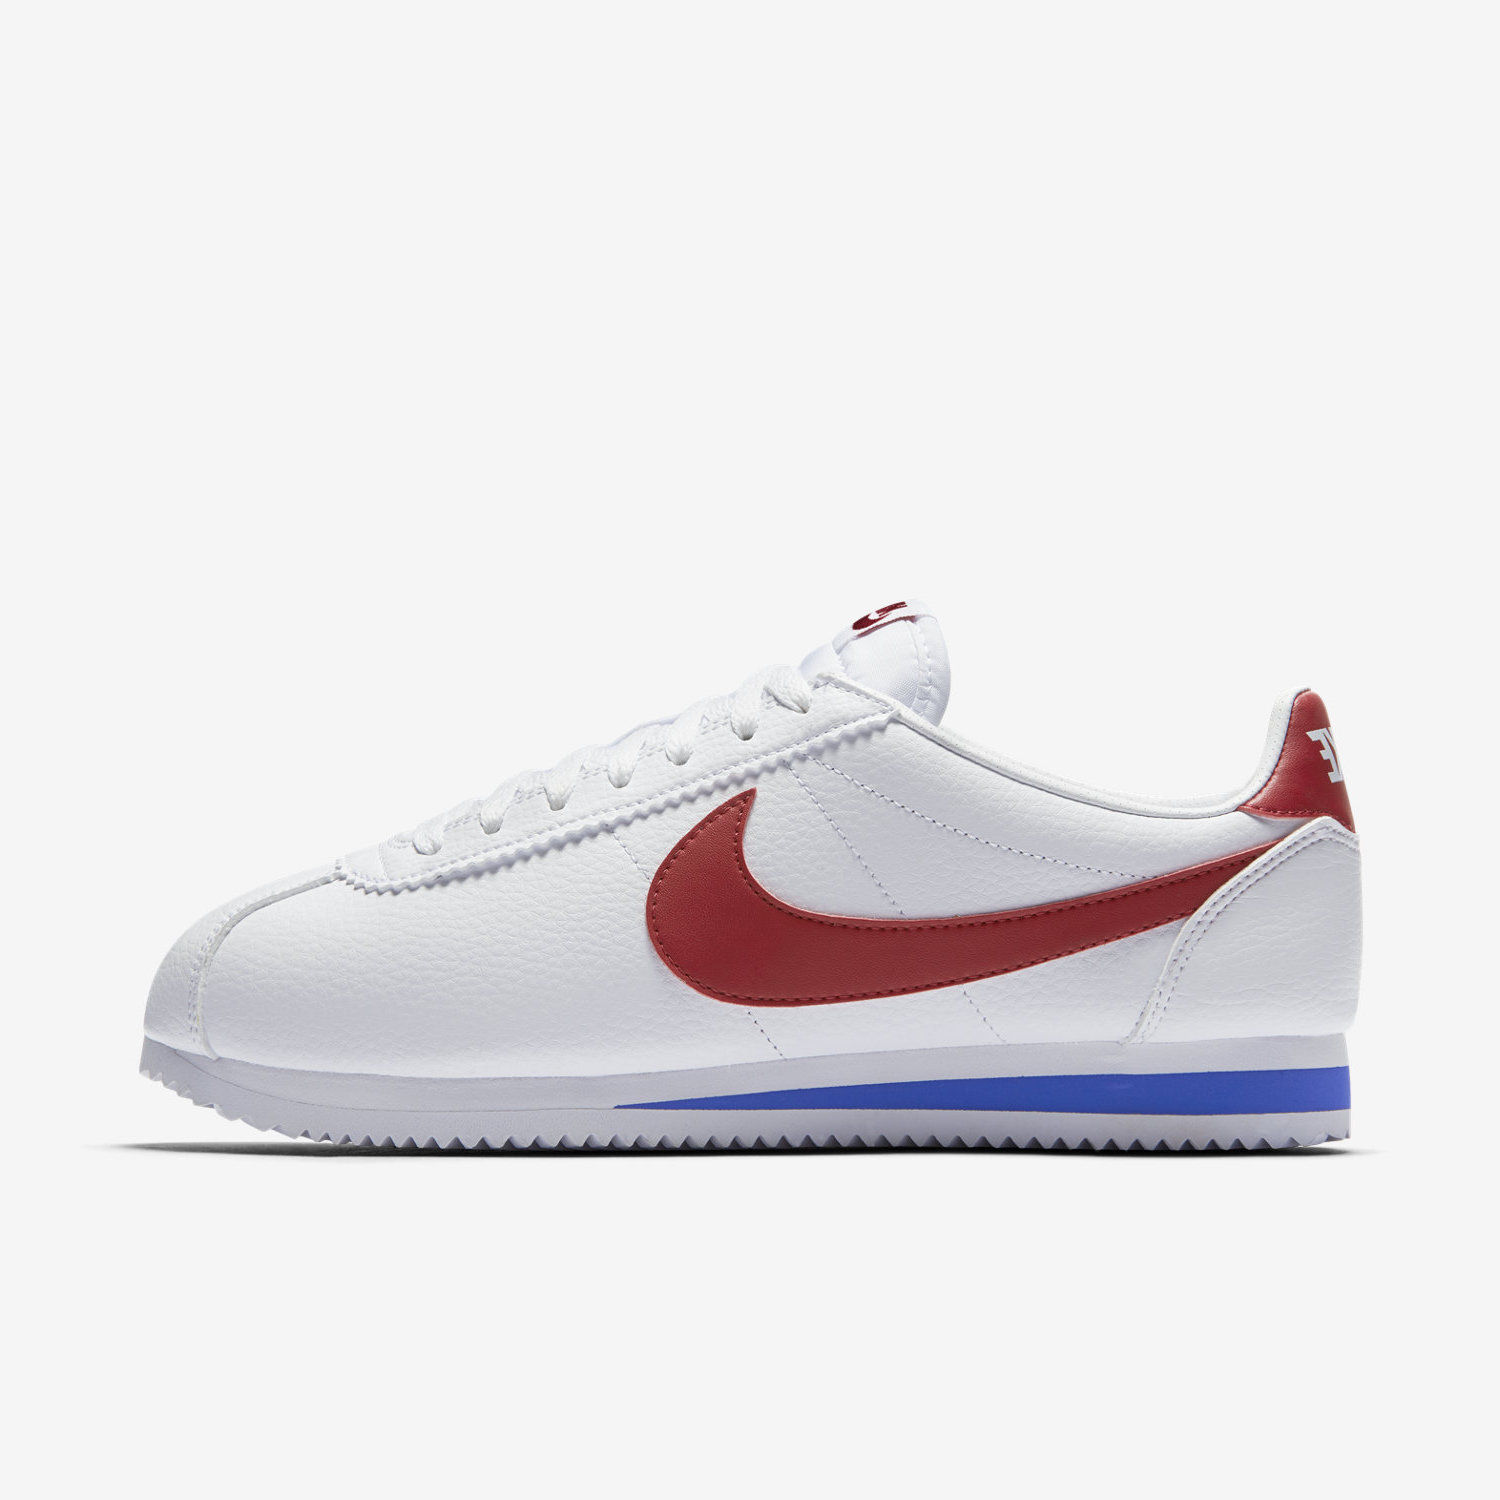 1361107aee3a8b Details about NIKE CLASSIC CORTEZ LEATHER FORREST GUMP 749571-154 WHITE  VARSITY ROYAL RED BLUE